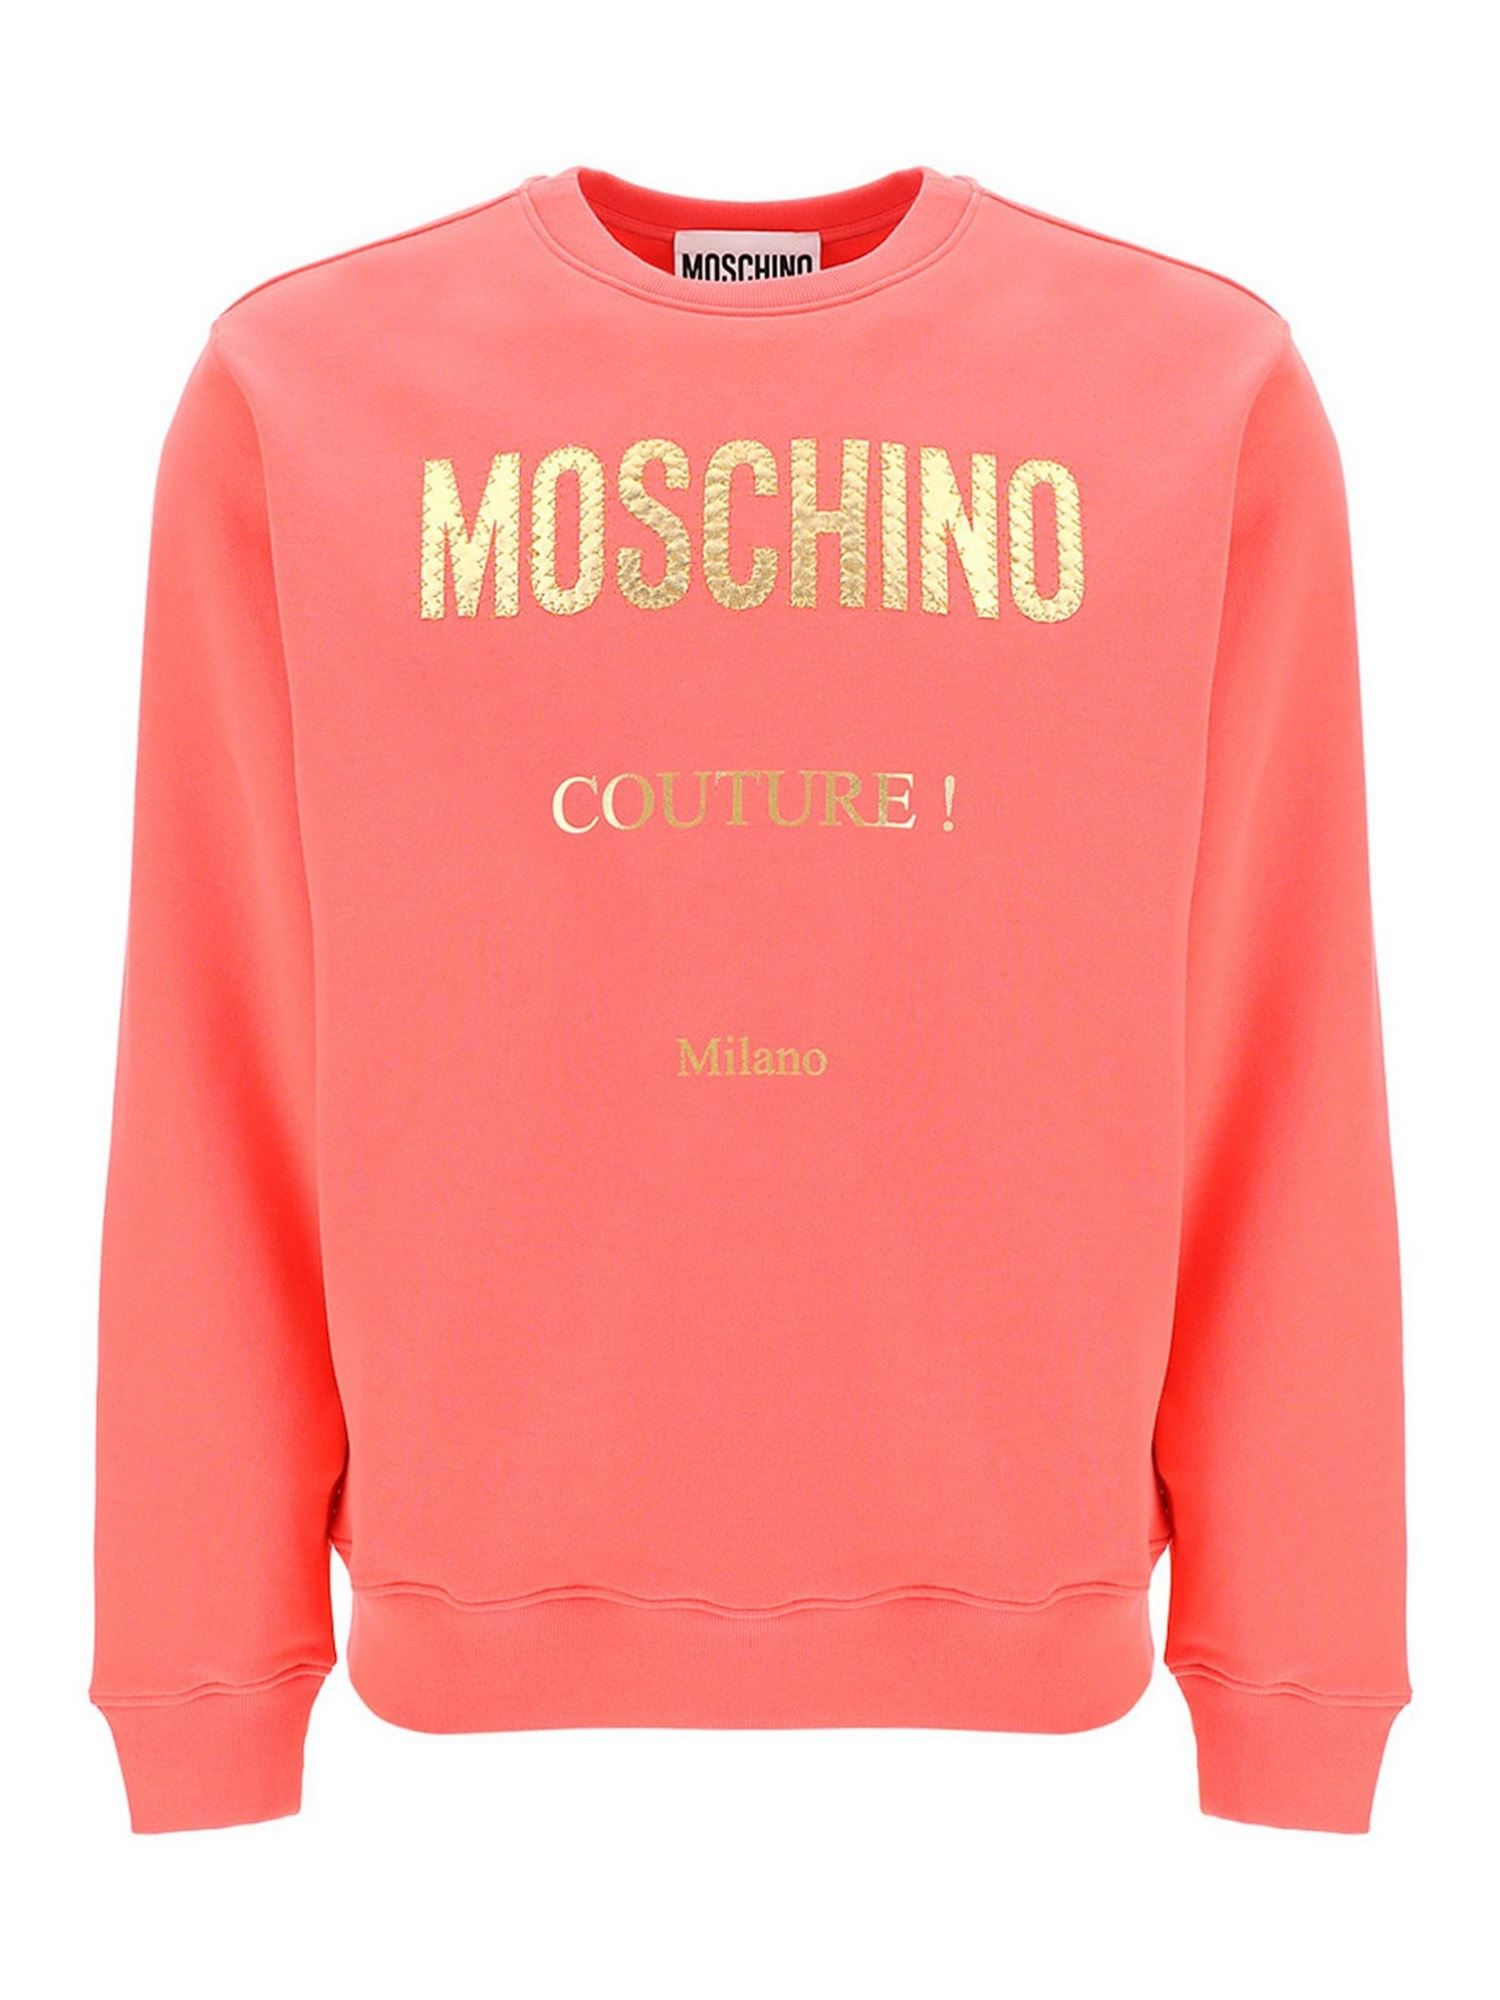 Moschino LAMINATED LOGO SWEATSHIRT IN LIGHT RED